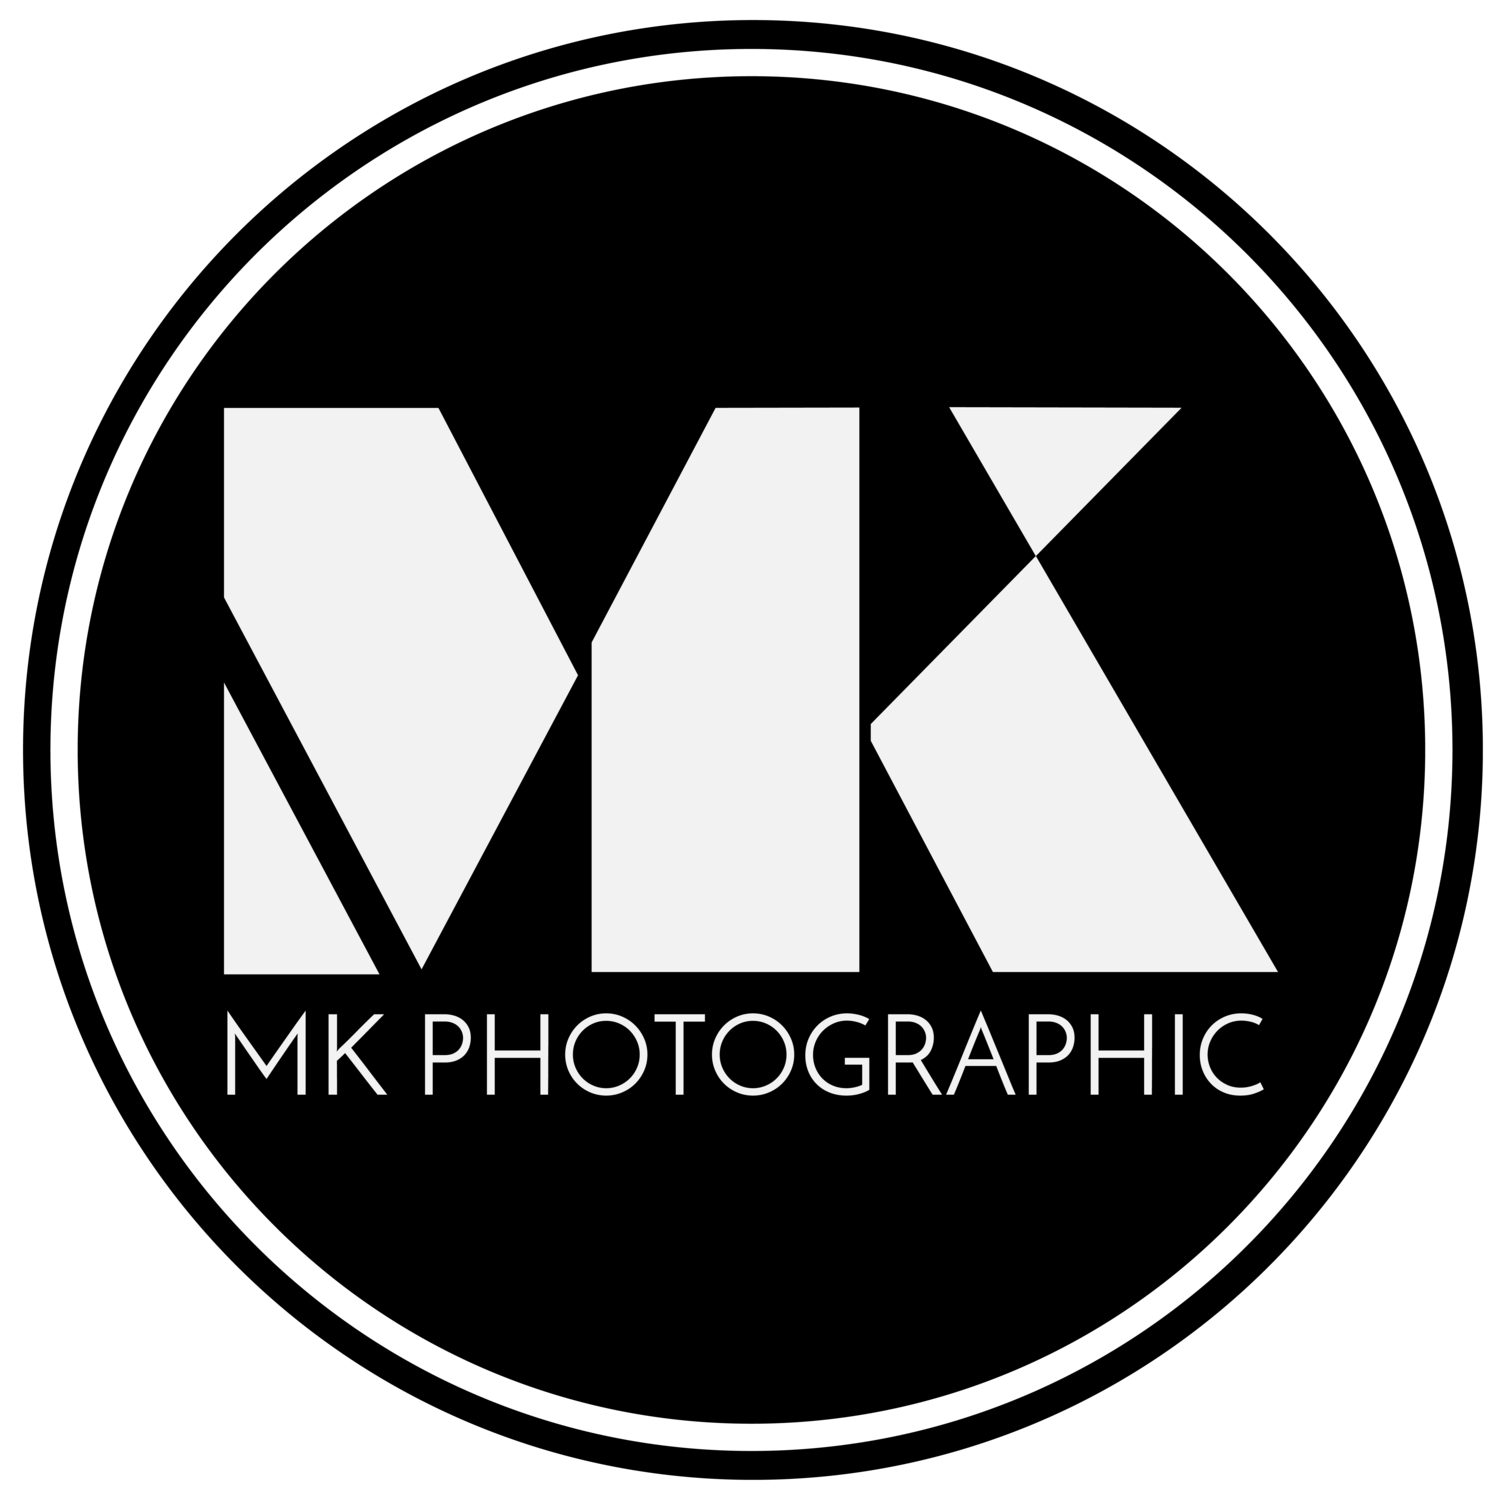 MK Photographic LLC